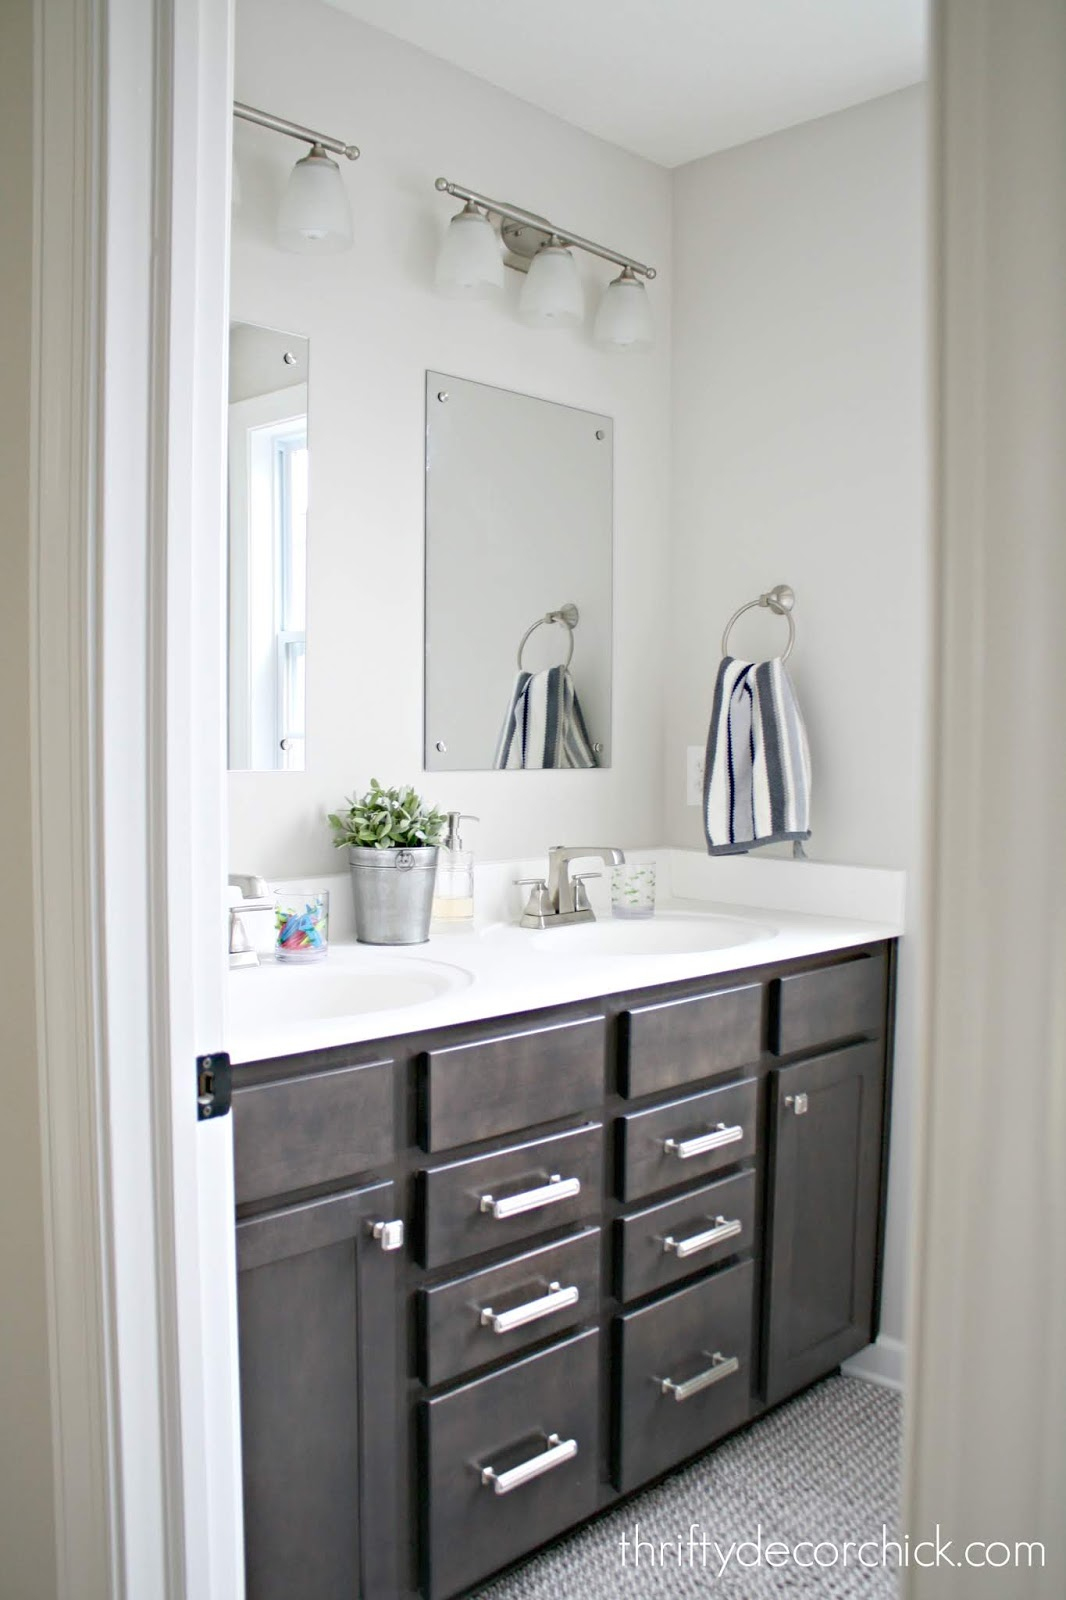 Two room or one room bathroom layout